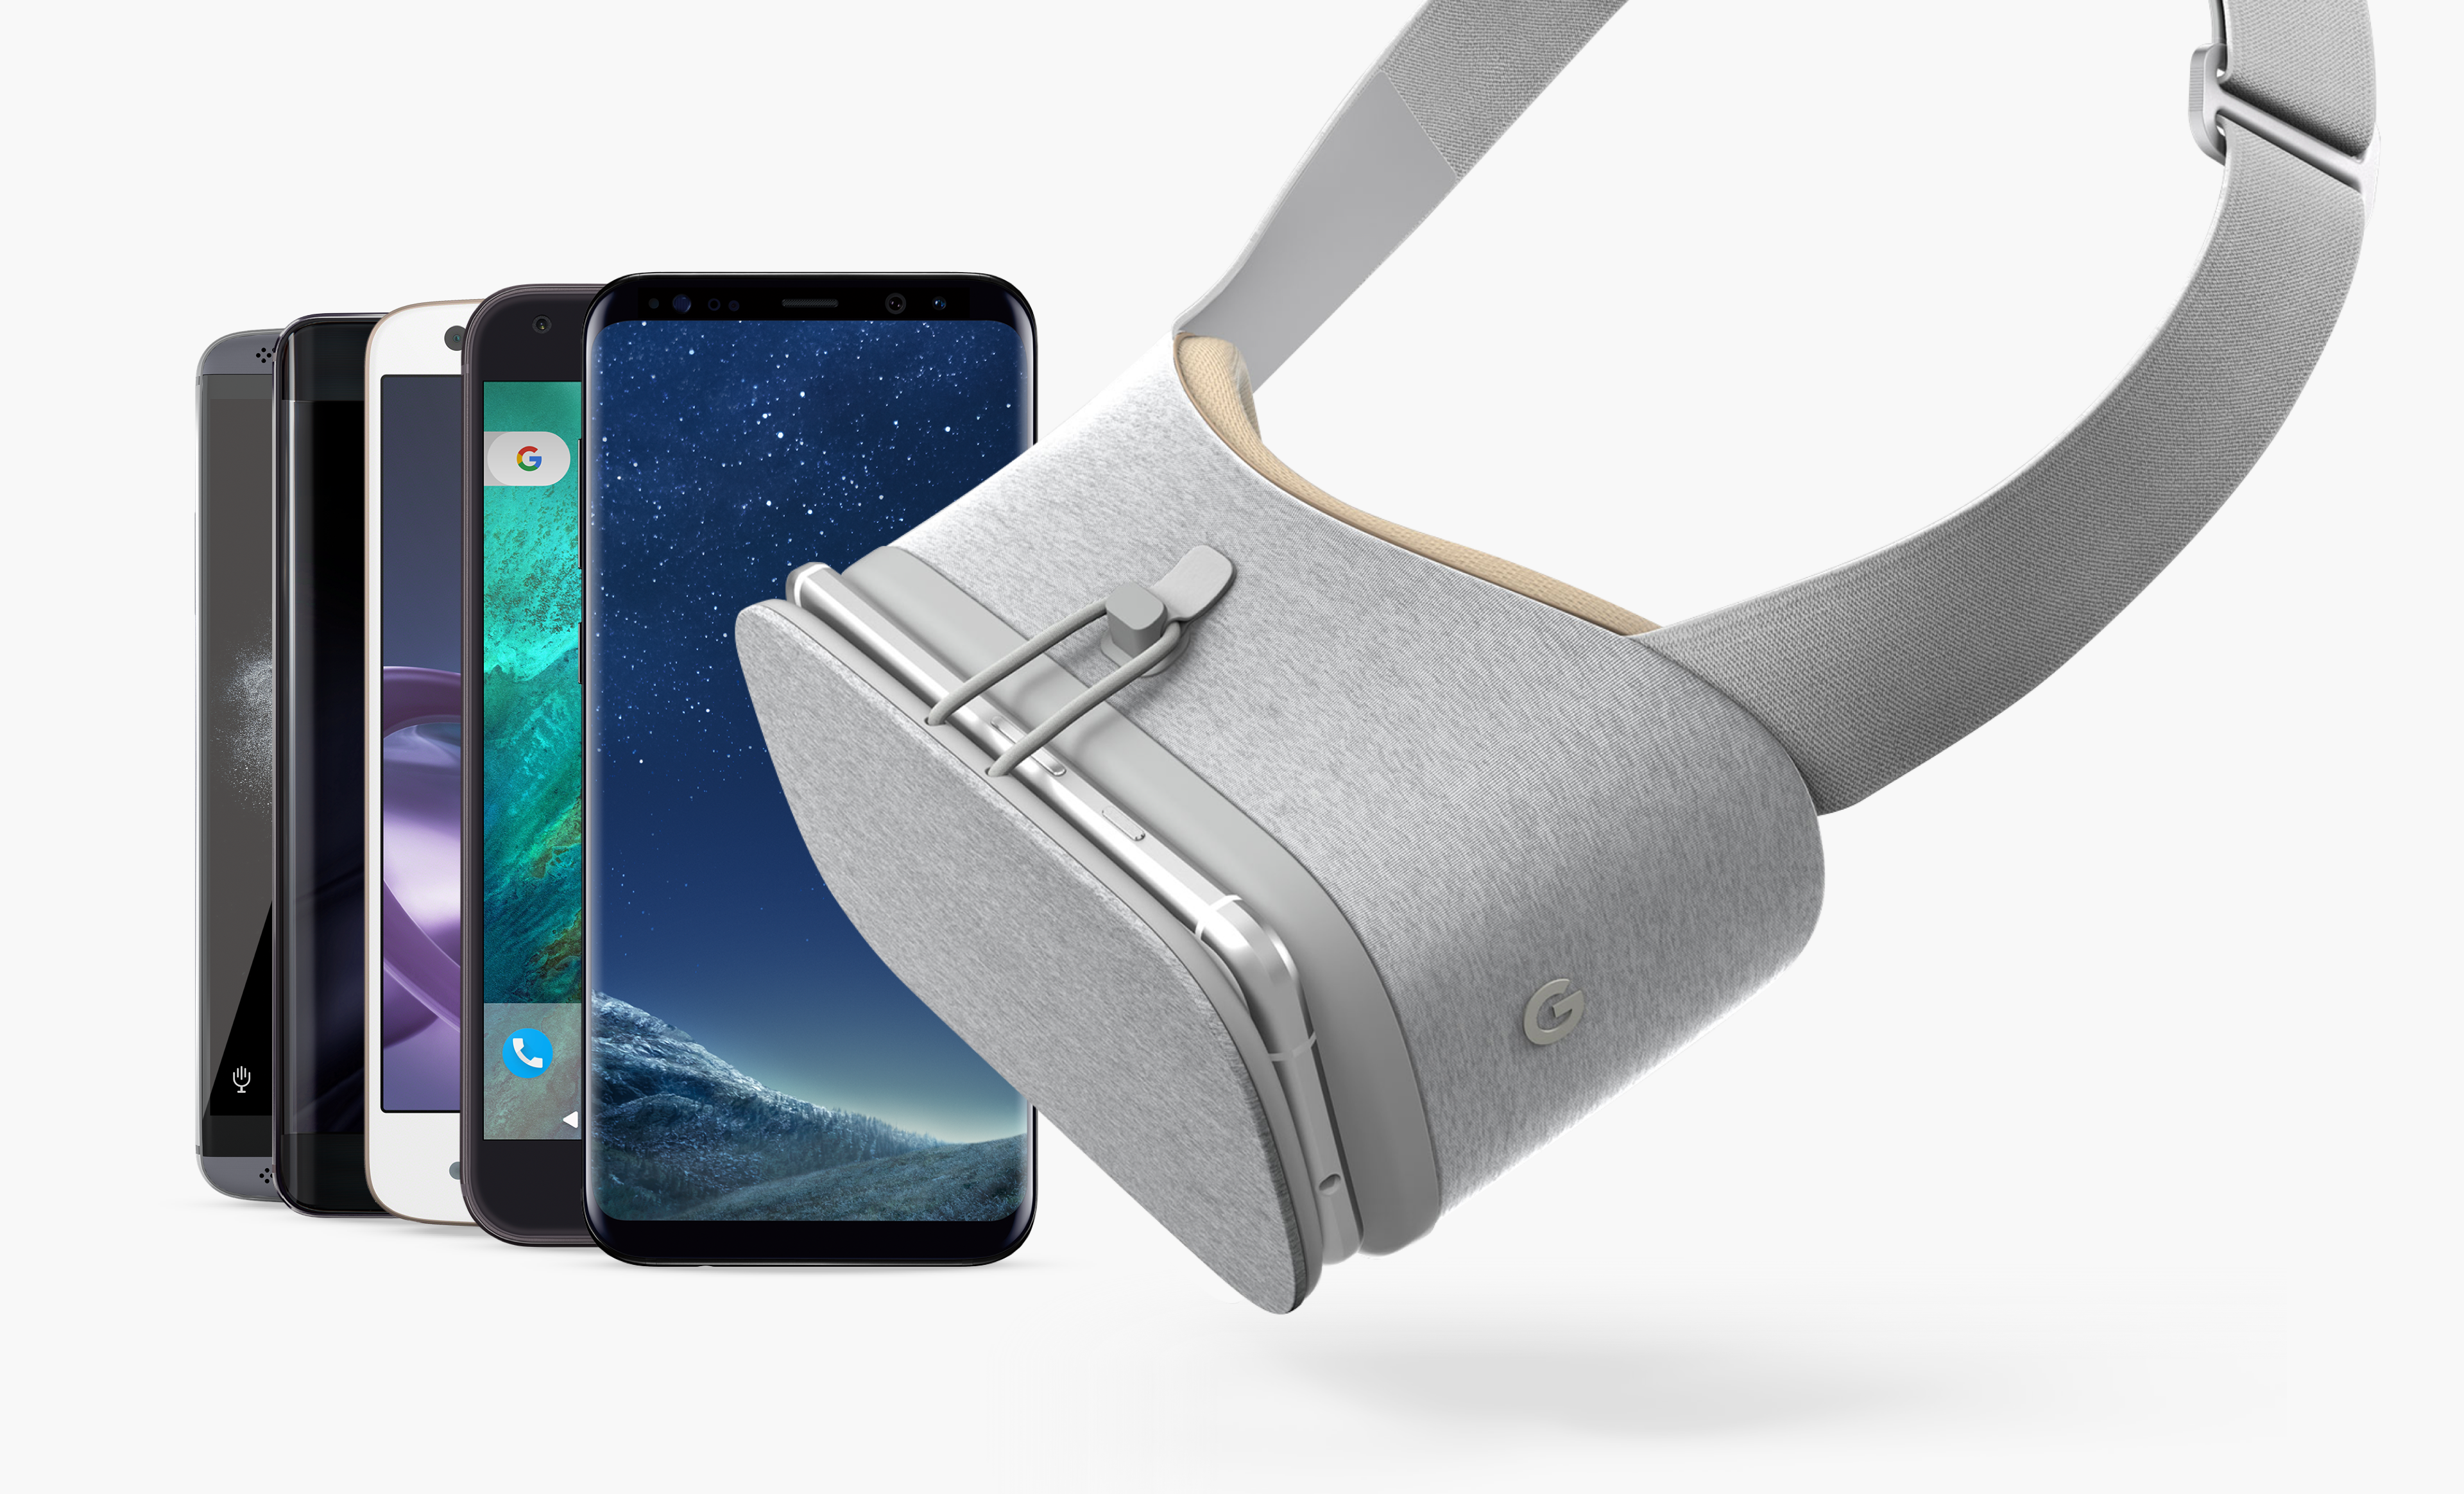 Daydream View headset on sale for $59 99 ($20 off) at Amazon